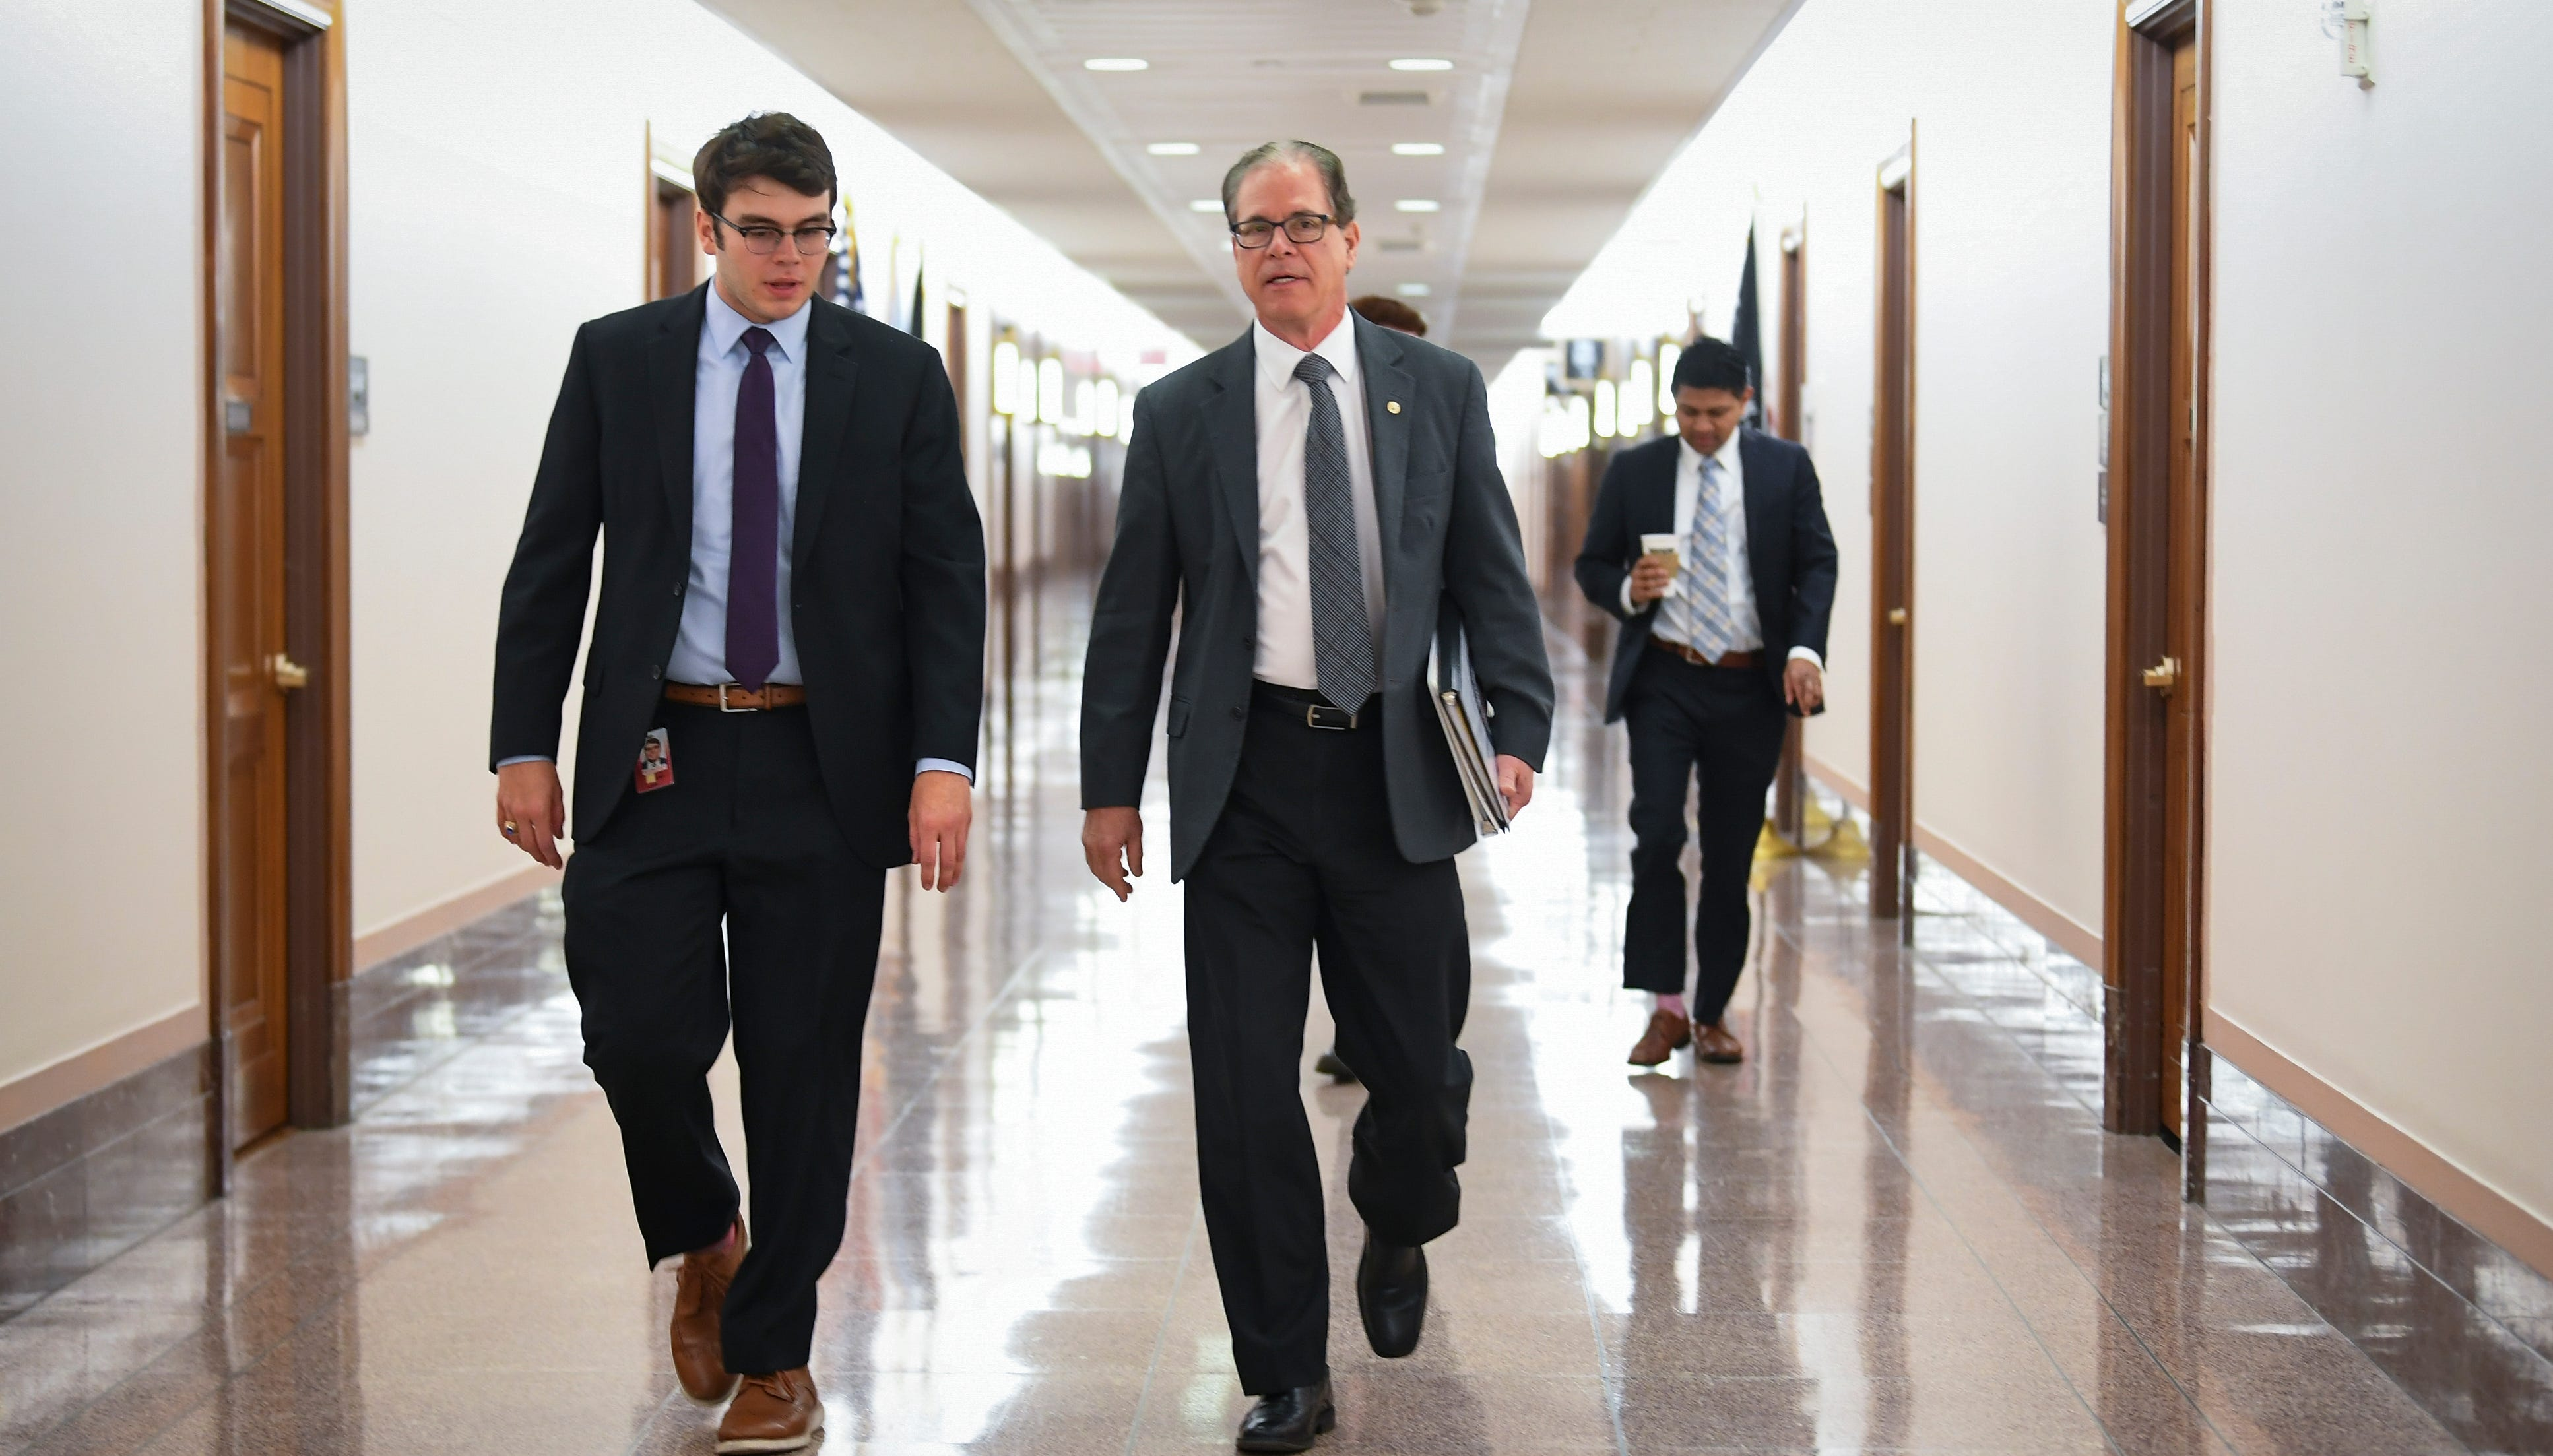 Senator Mike Braun, R-Indiana, walking with members of his staff to a United States Senate Special Committee on Aging hearing held in the Dirksen Senate office building examining issue of elder fraud.